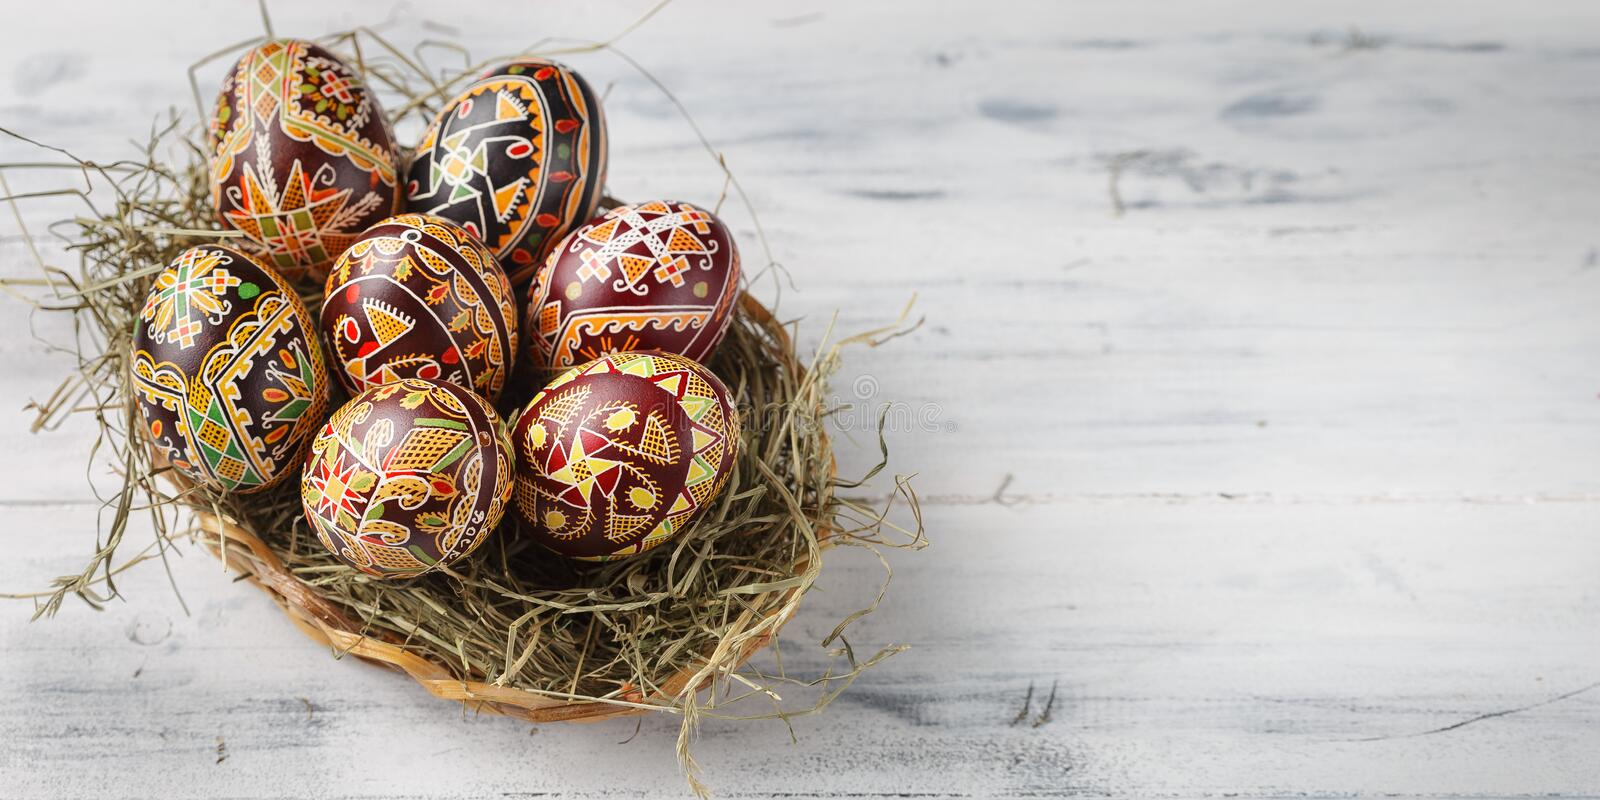 Easter eggs decorated with wax resist technique. Pysanky, Ukrainian Easter eggs decorated with wax-resist dyeing technique, white wooden background, copy space stock images